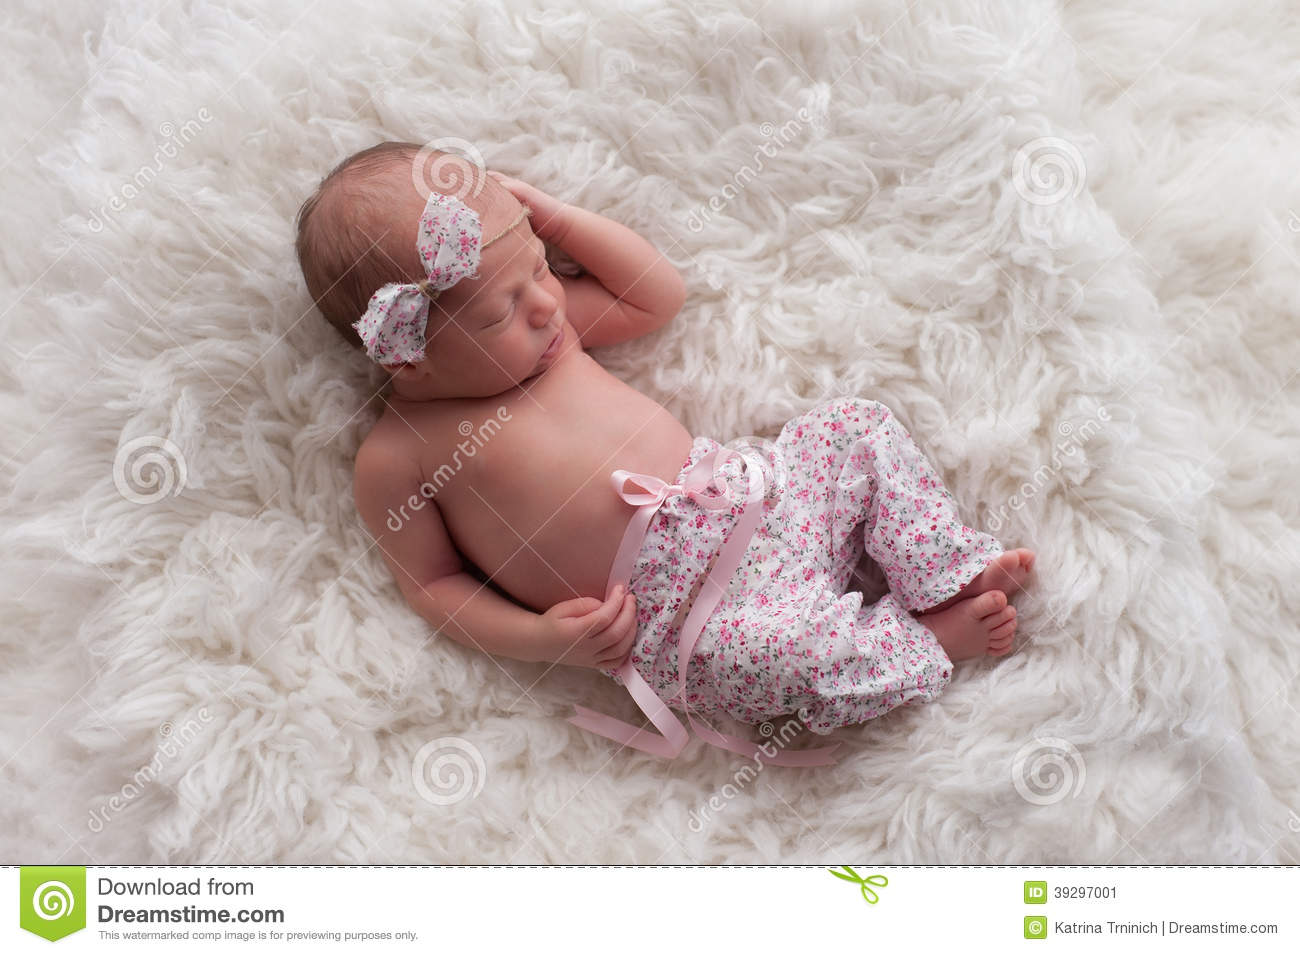 Sleeping Newborn Baby Girl Stock Photo - Image: 39297001